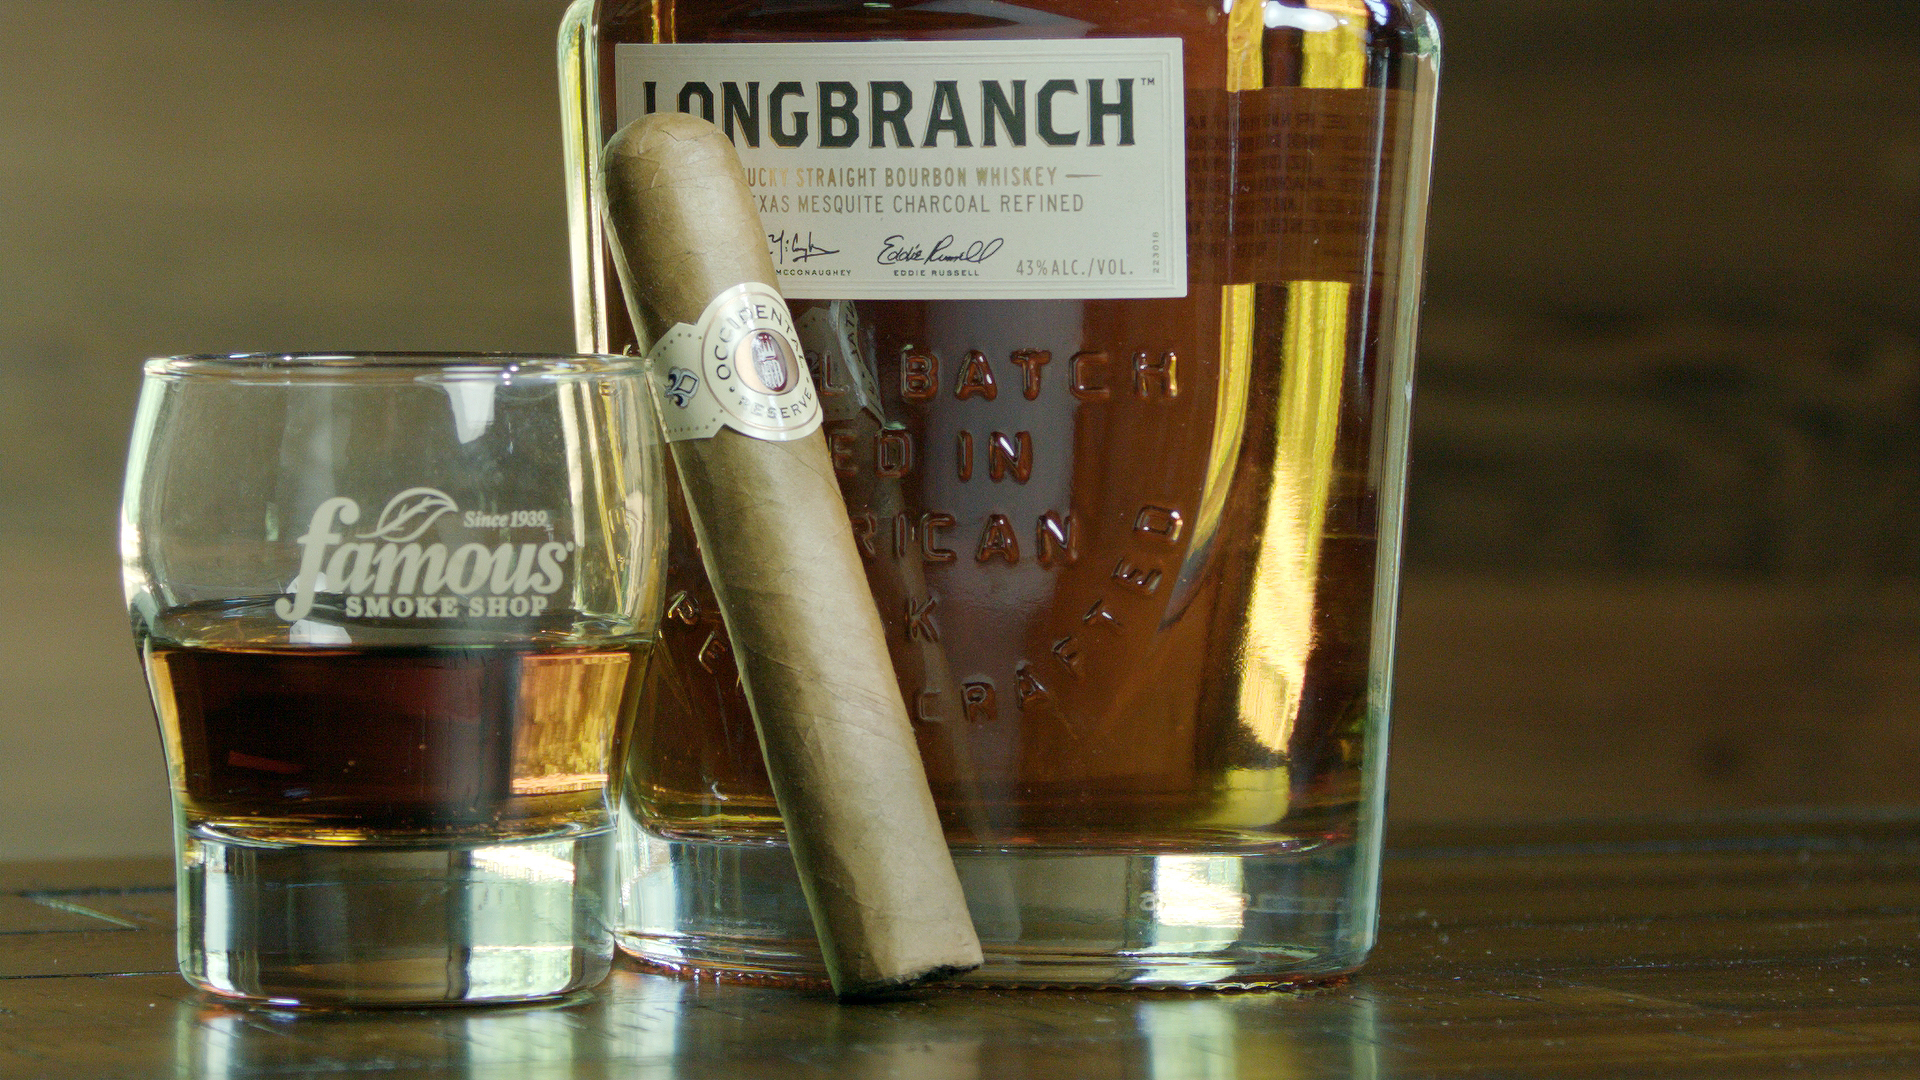 Occidental Reserve CT cigar paired with Longbranch Bourbon